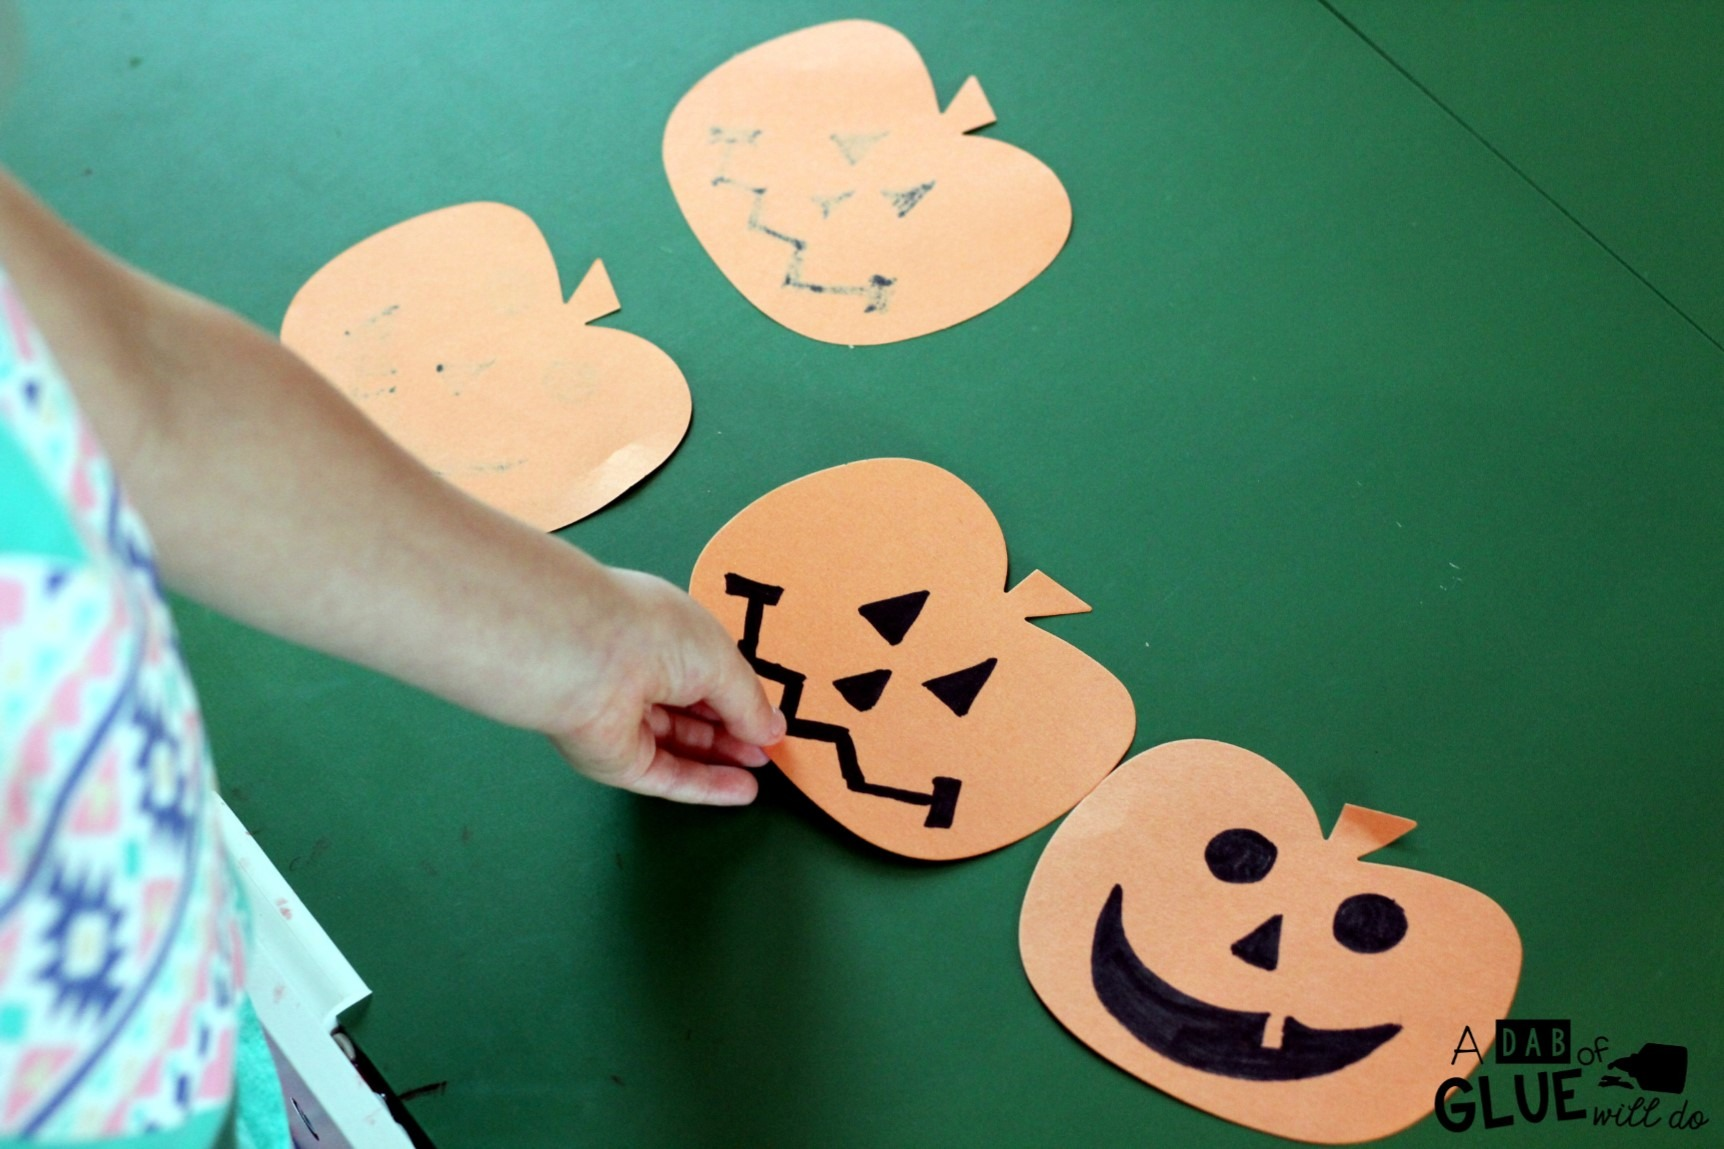 DIY Jack-O-Lantern Memory is a fun learning game that has students practicing letters, numbers, addition or subtraction, and sight words. This hands-on activity is perfect for preschool, kindergarten, first grade and second grade students.